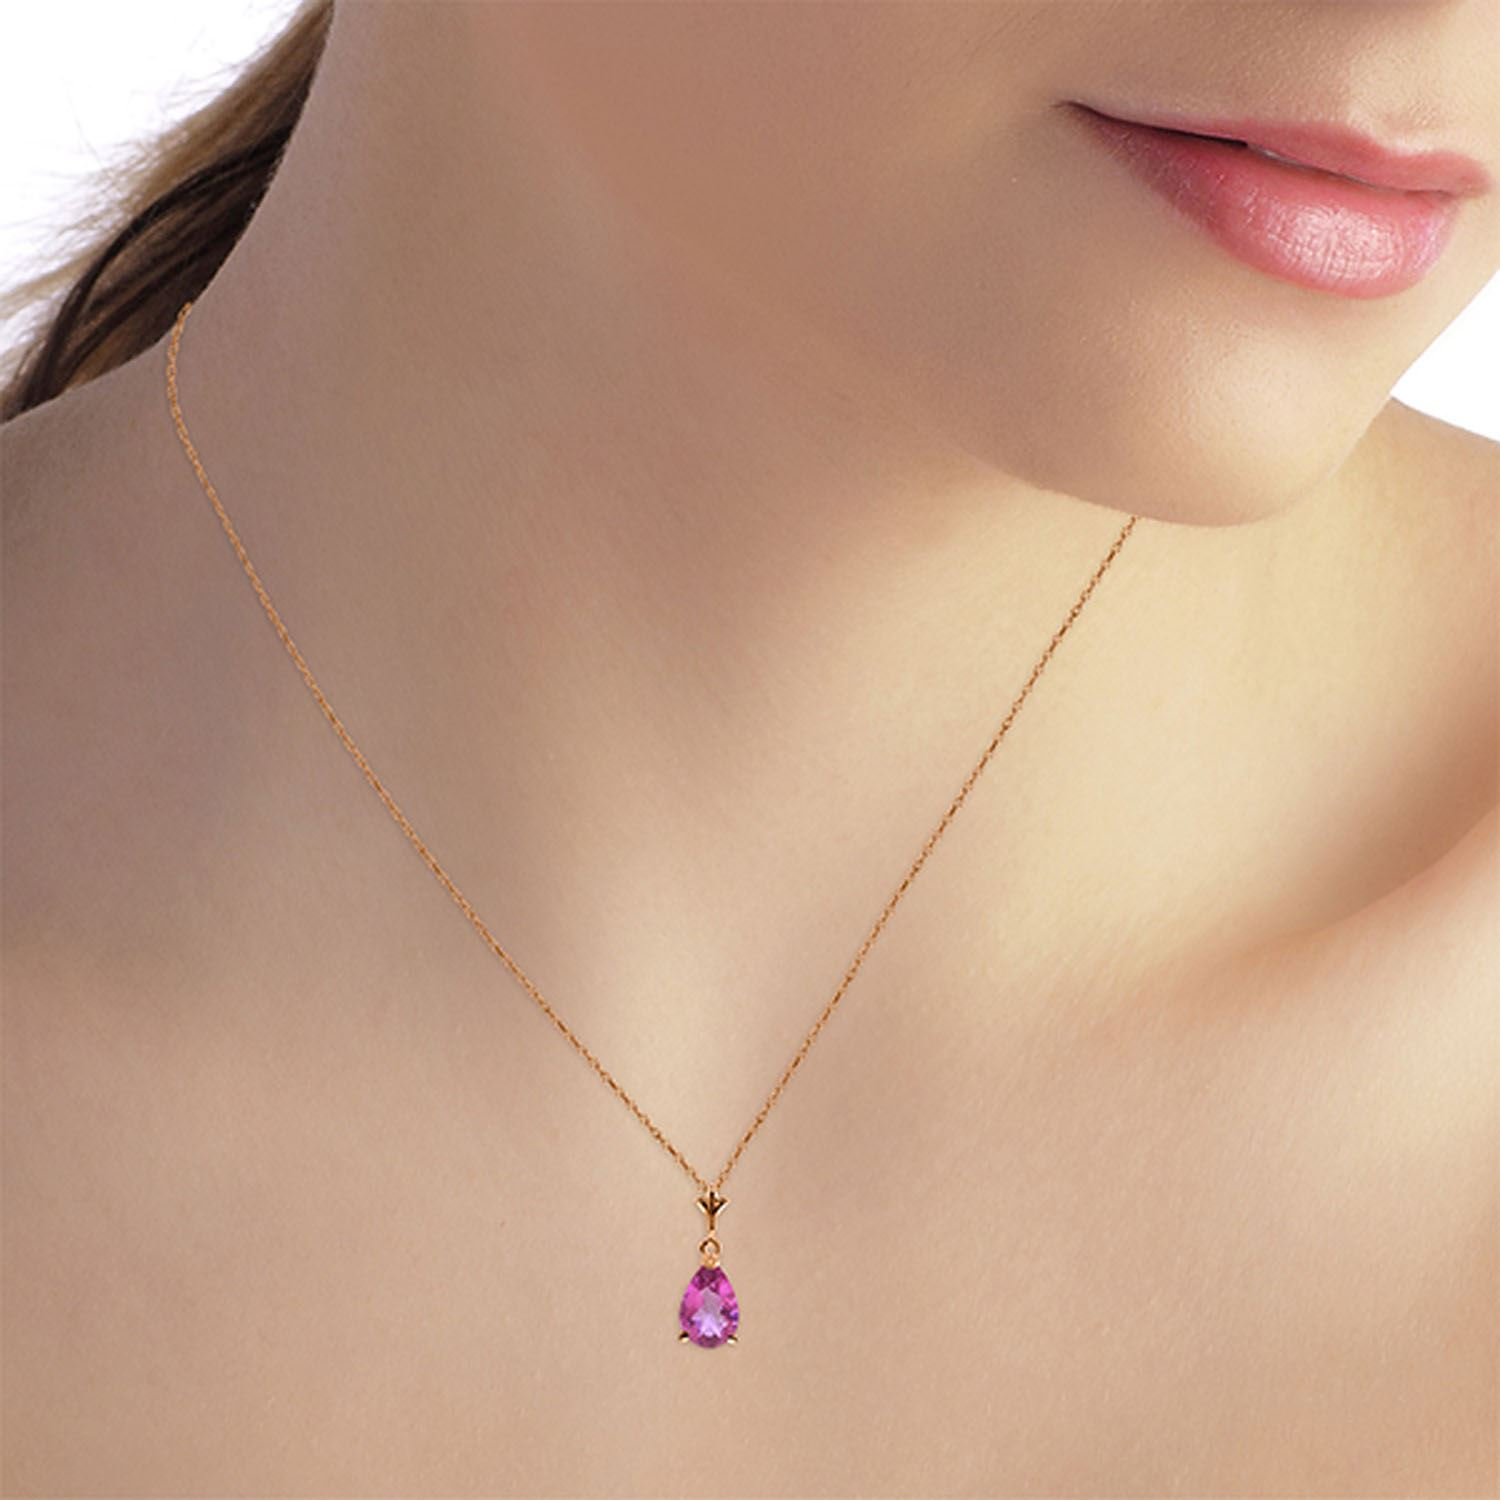 ALARRI 1.5 Carat 14K Solid Rose Gold Necklace Natural Rose Topaz with 22 Inch Chain Length